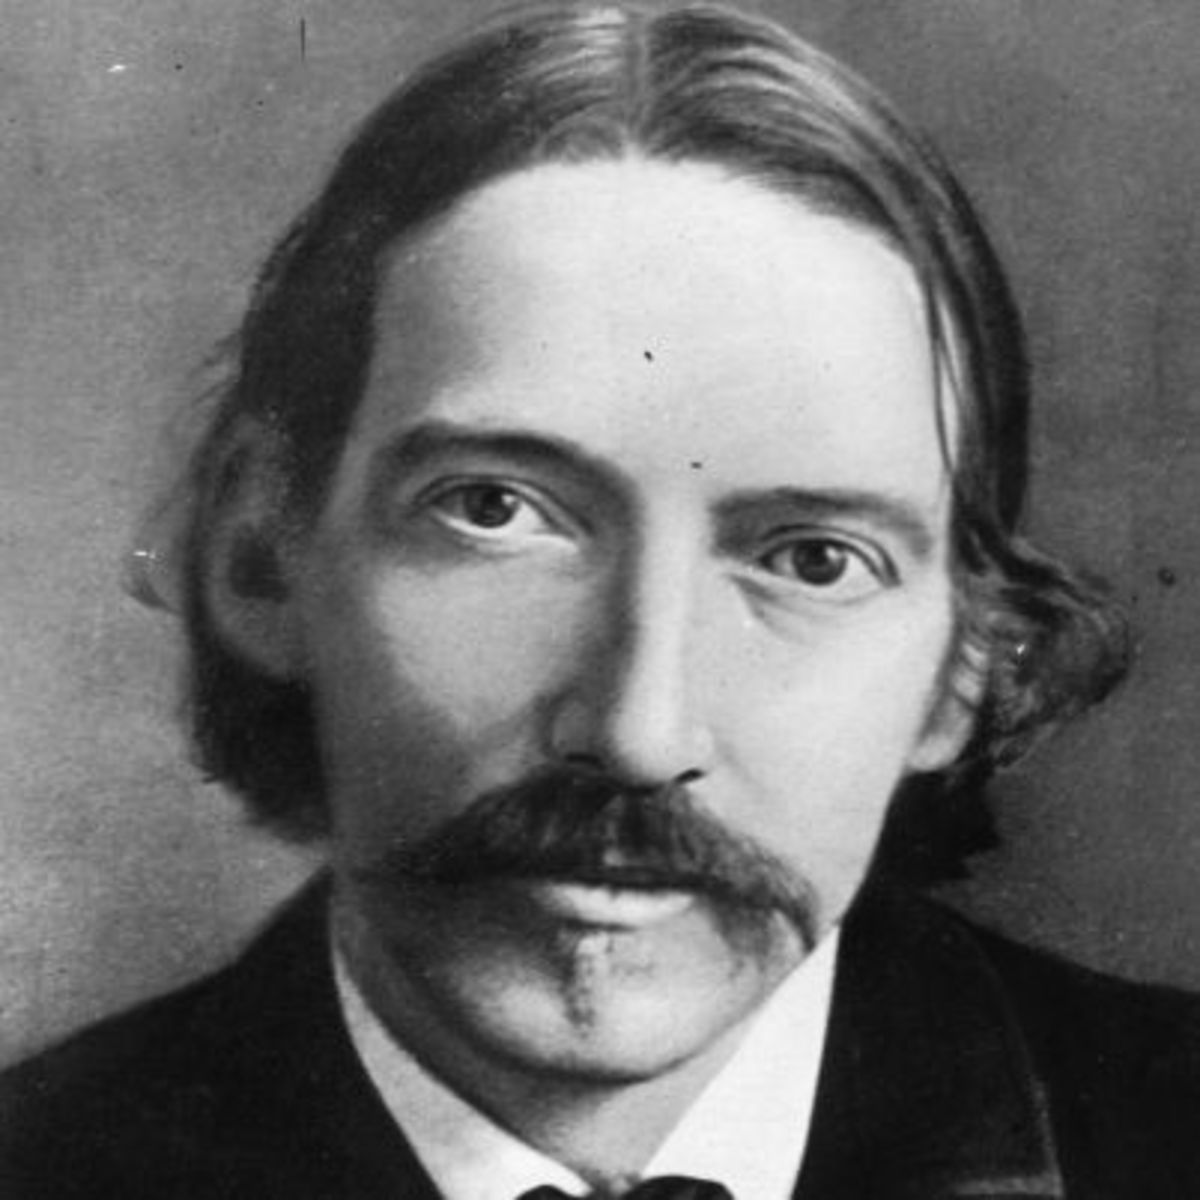 on biography com learn more about scottish writer robert louis robert louis stevenson was a century scottish writer notable for such novels as treasure island kidnapped and strange case of dr jekyll and mr hyde